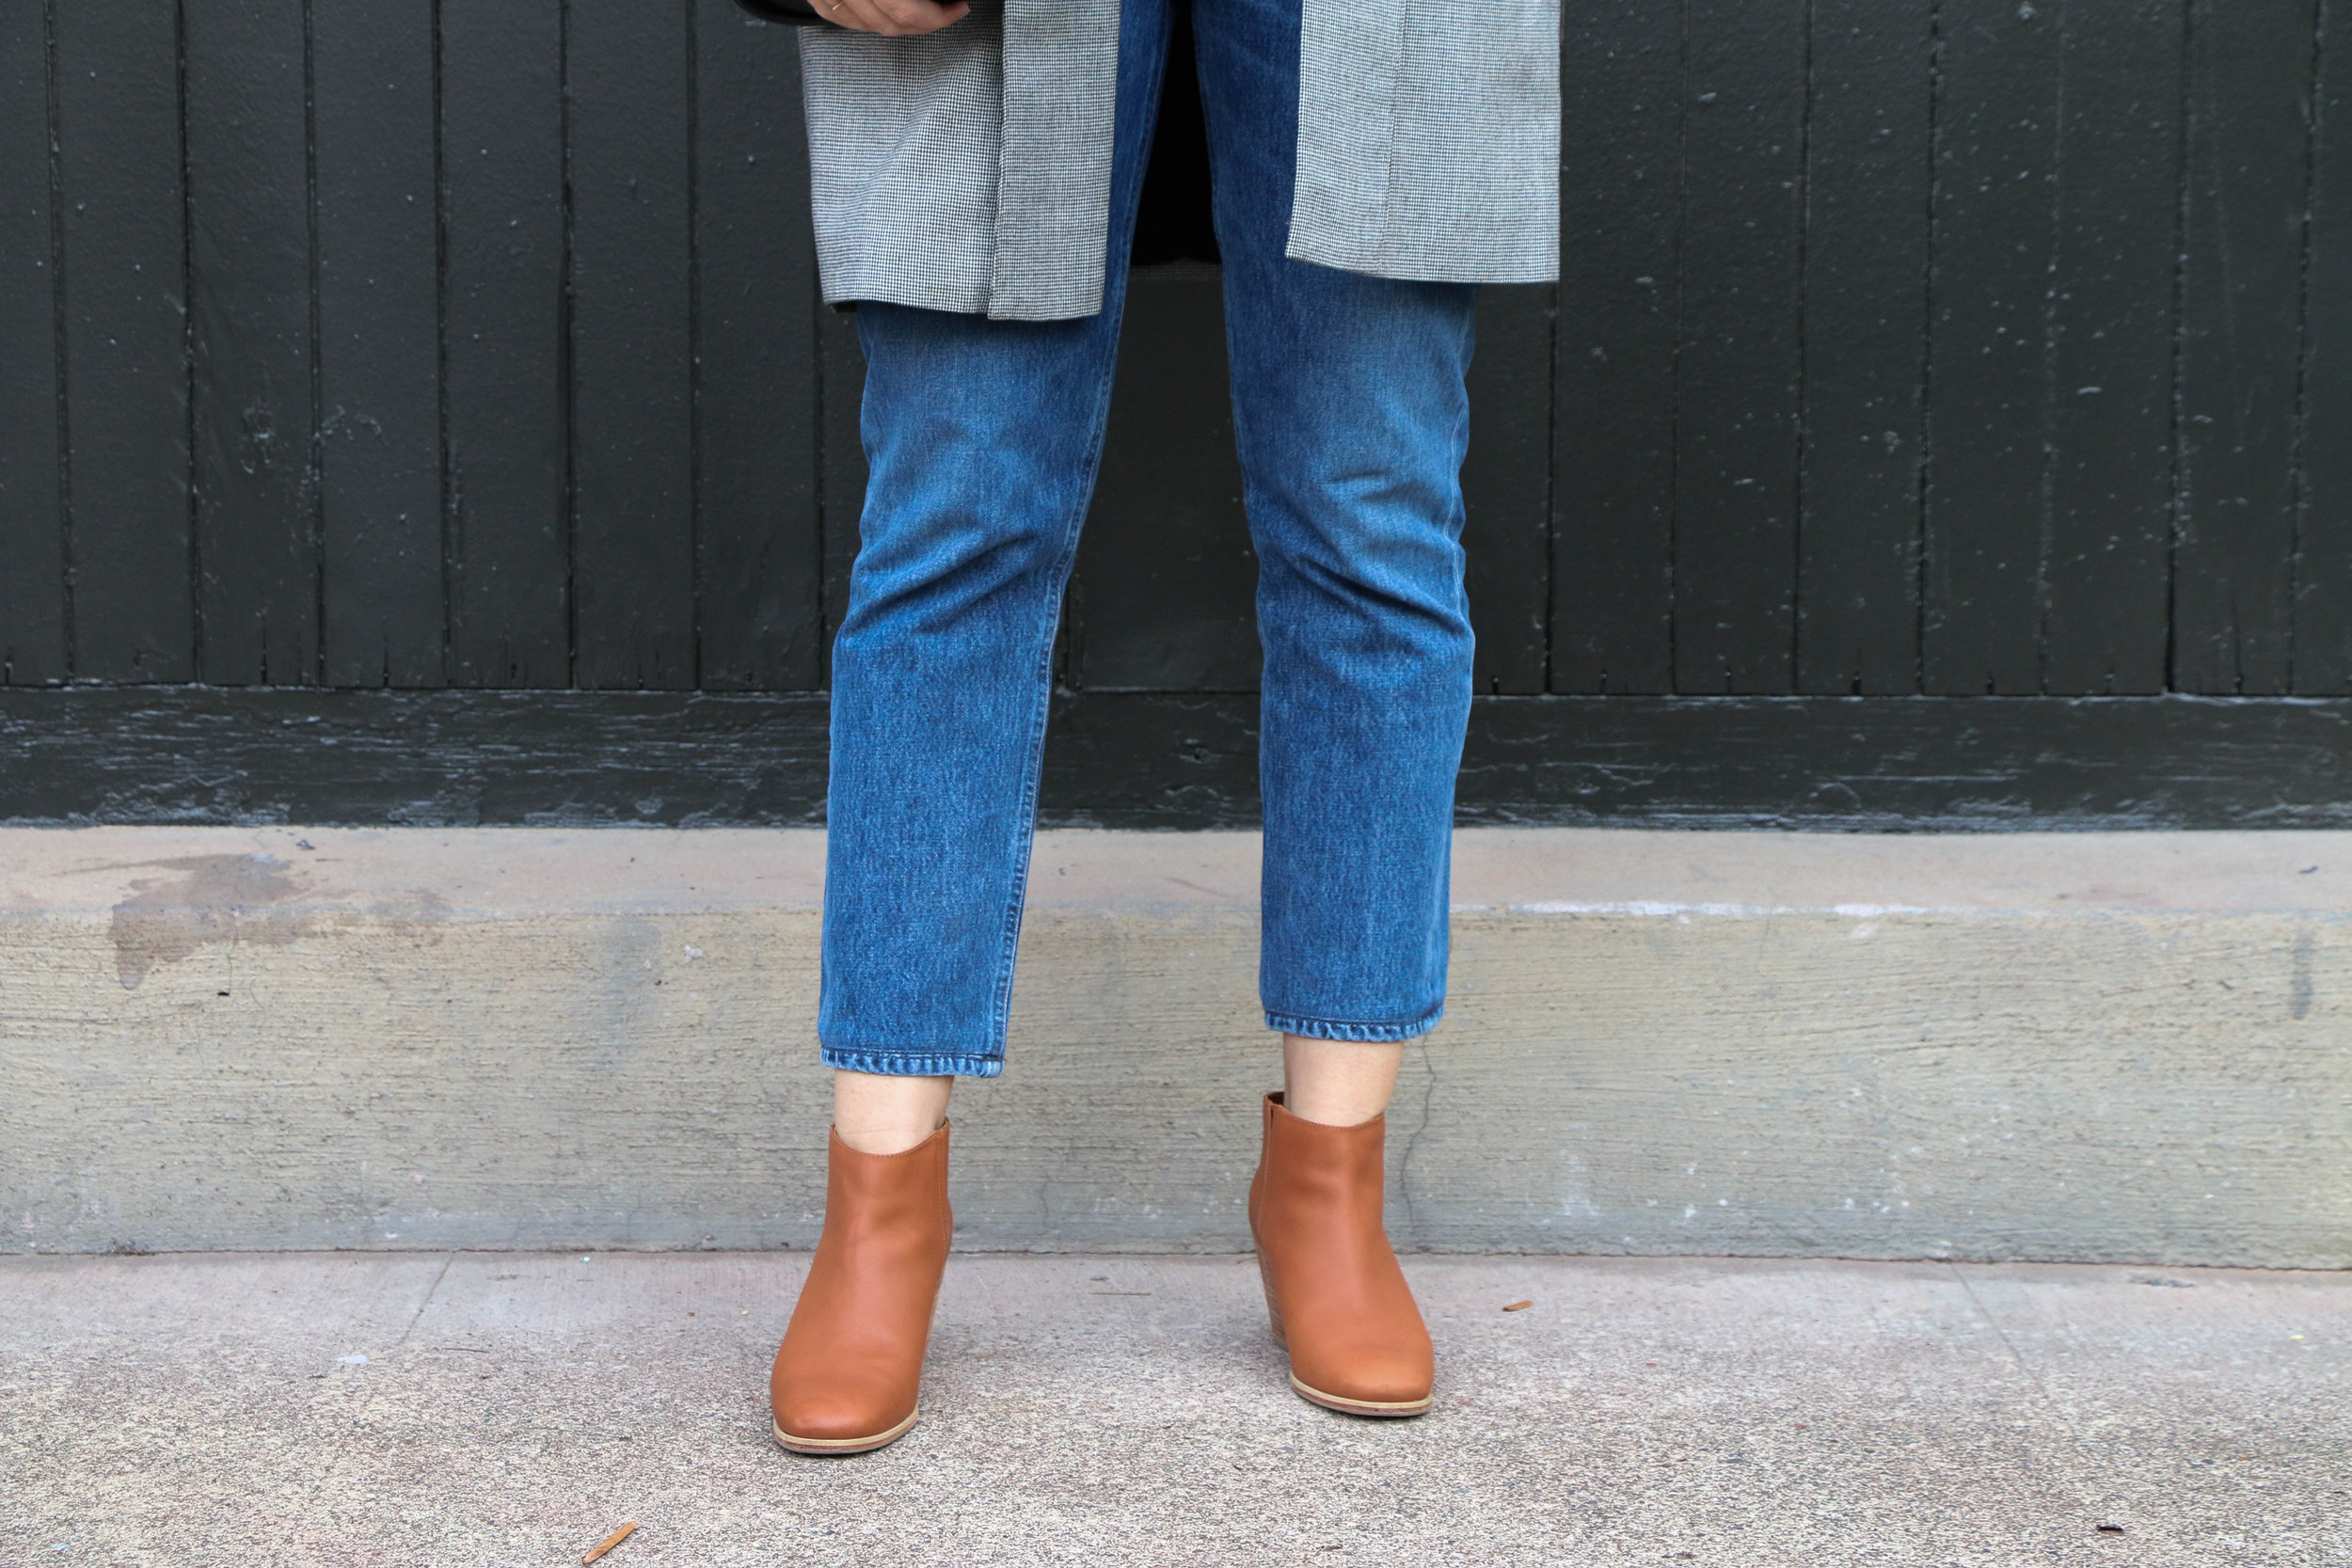 the-thoughtful-closet_fall-10x10_challenge_outfit-2_-9.jpg